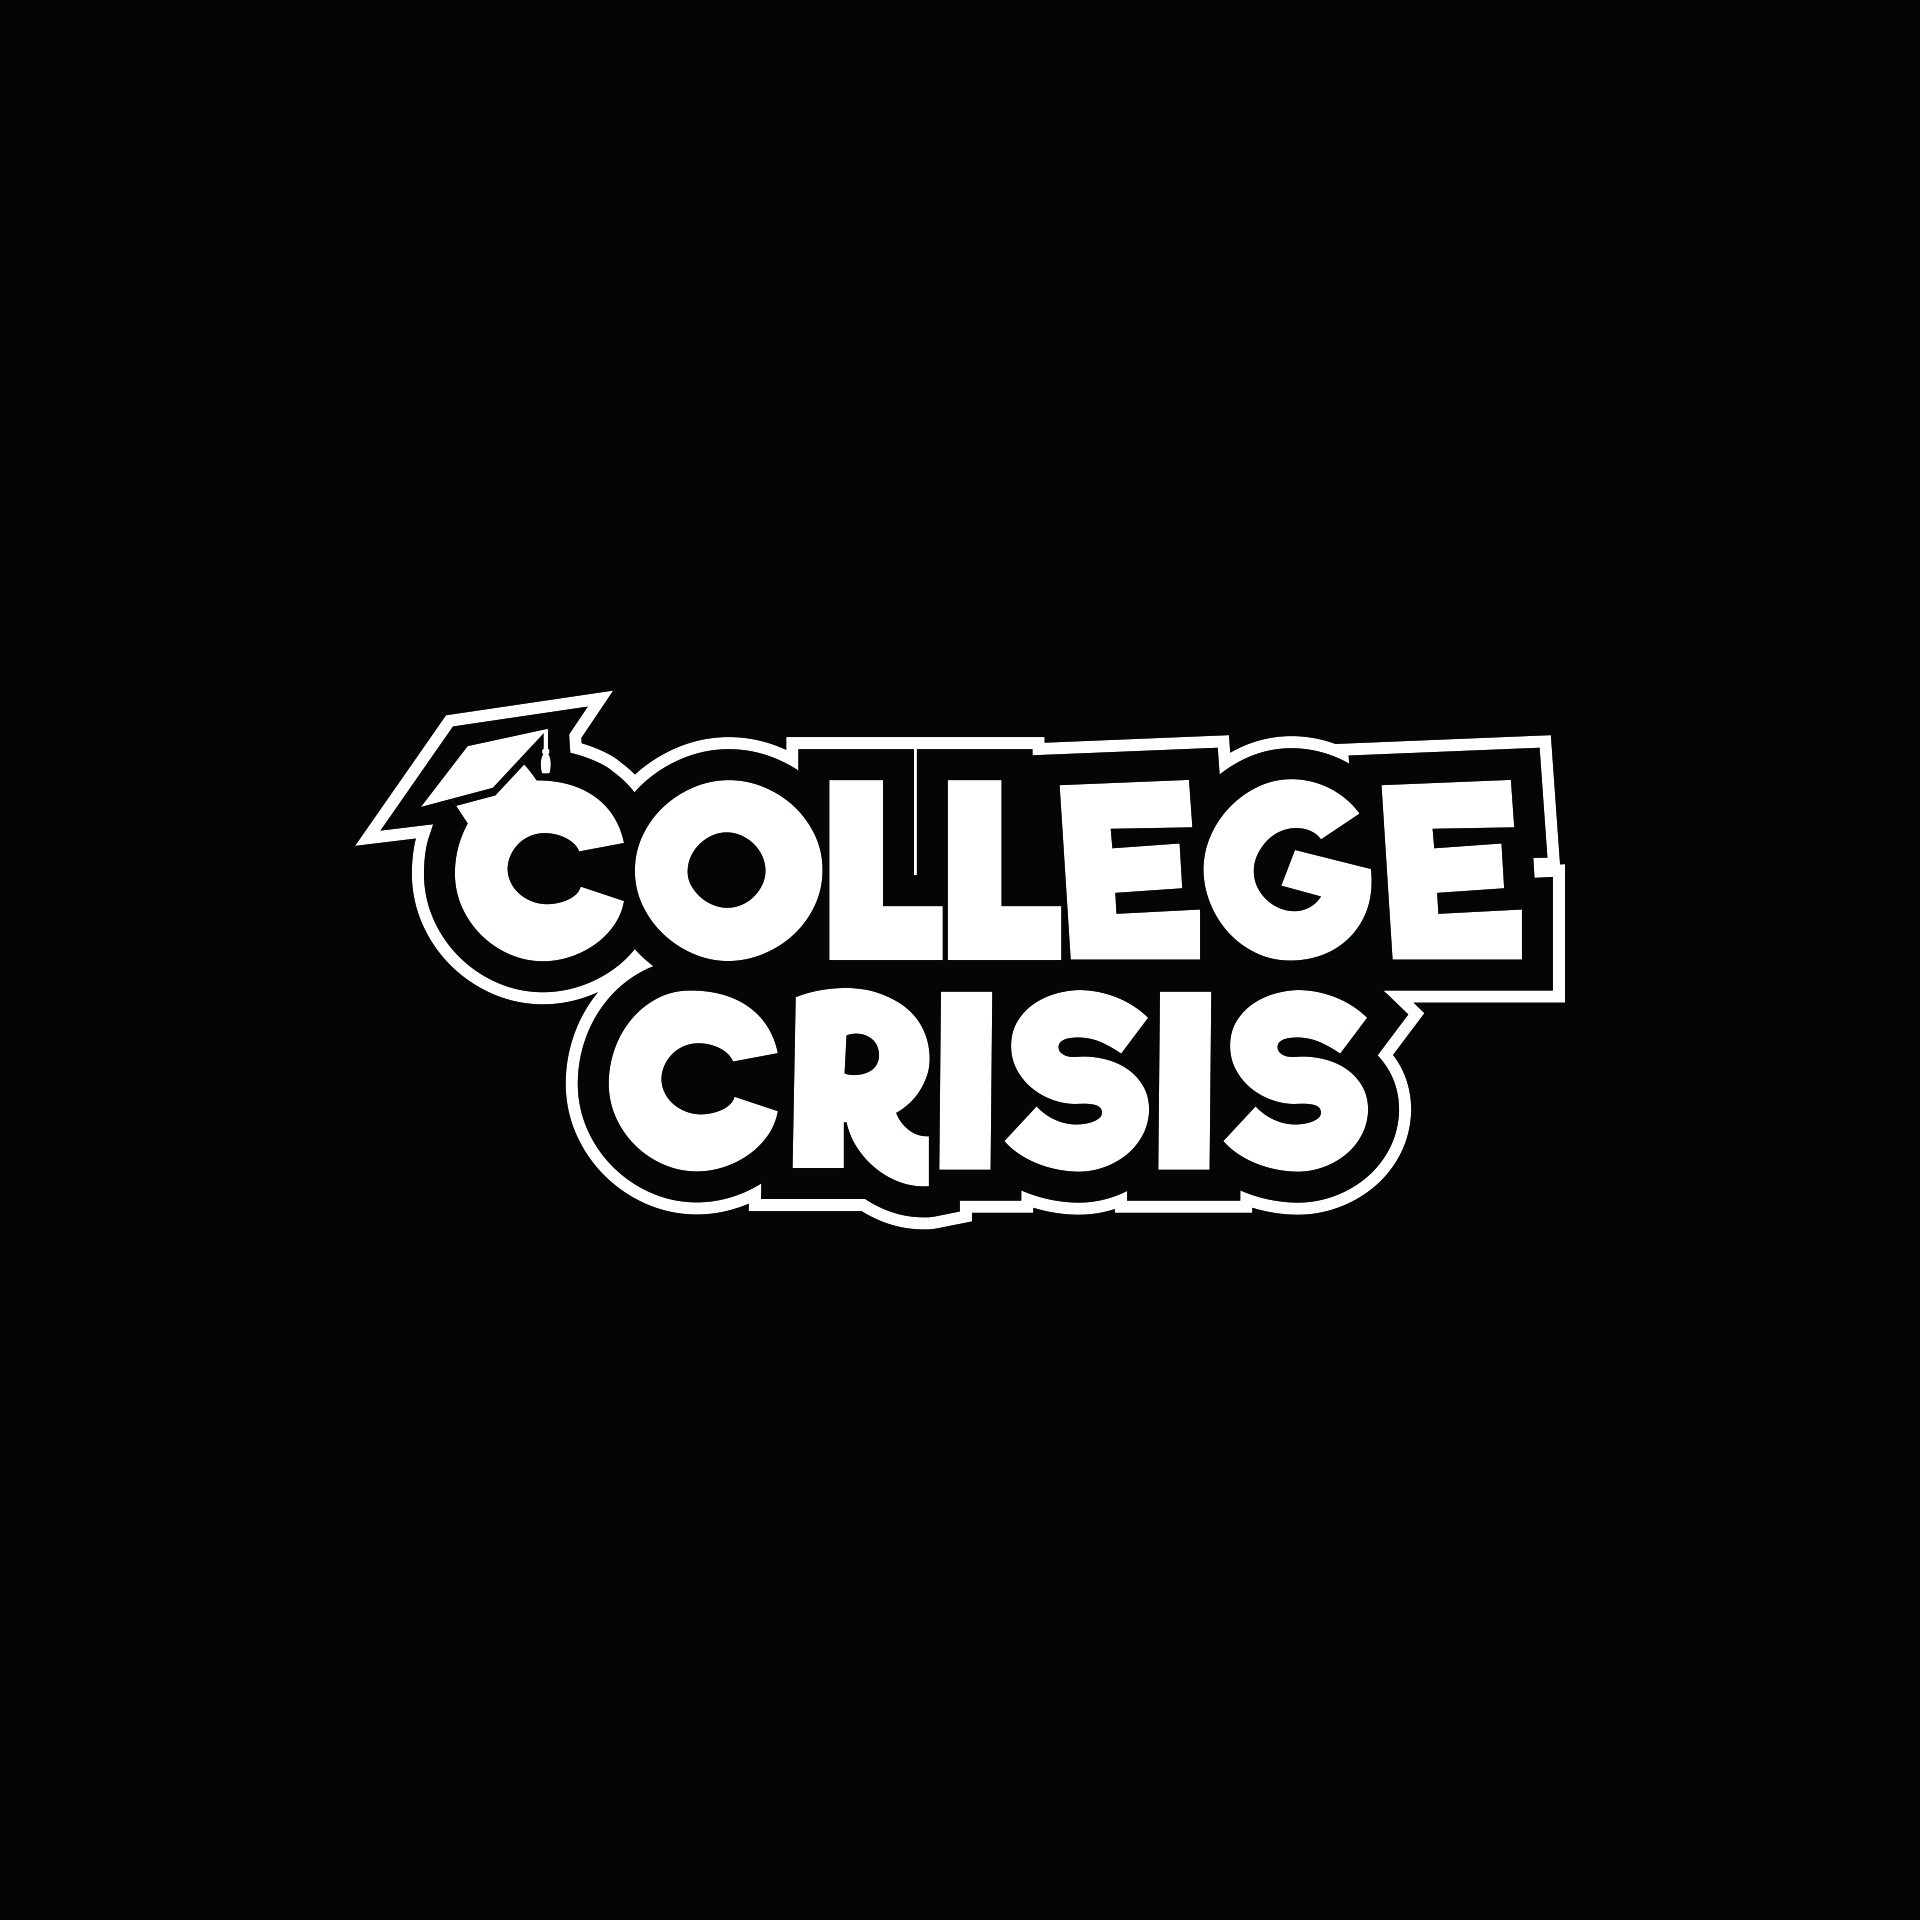 Design a slick and iconic logo for 'College Crisis' -  a fun party card game!